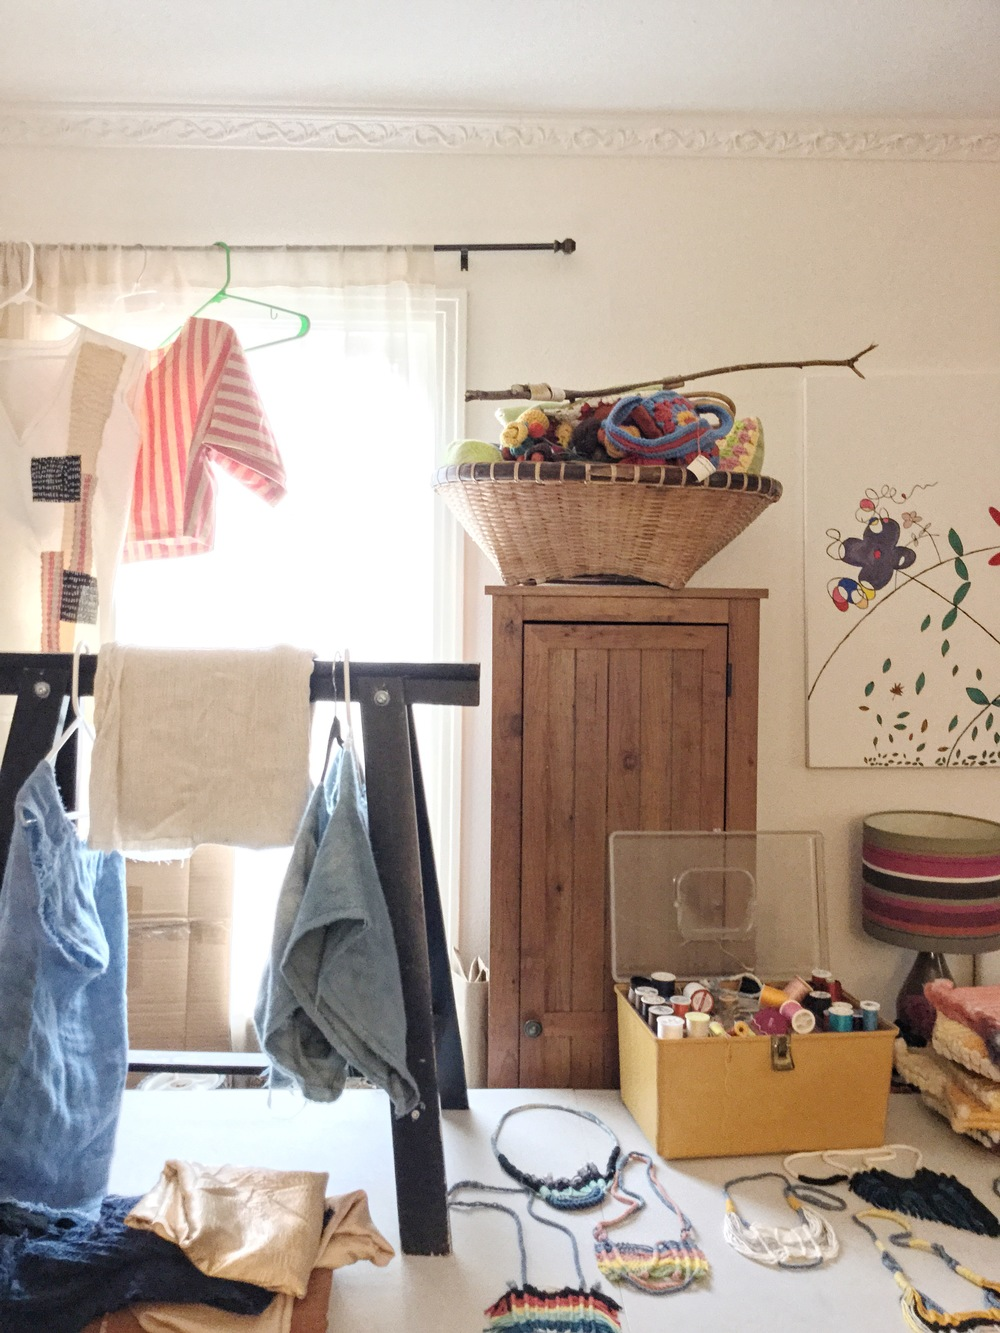 The home studio: Draped in sunlight, bits and baubles decorate the workspace. Her gorgeous necklaces prepare to ship out.